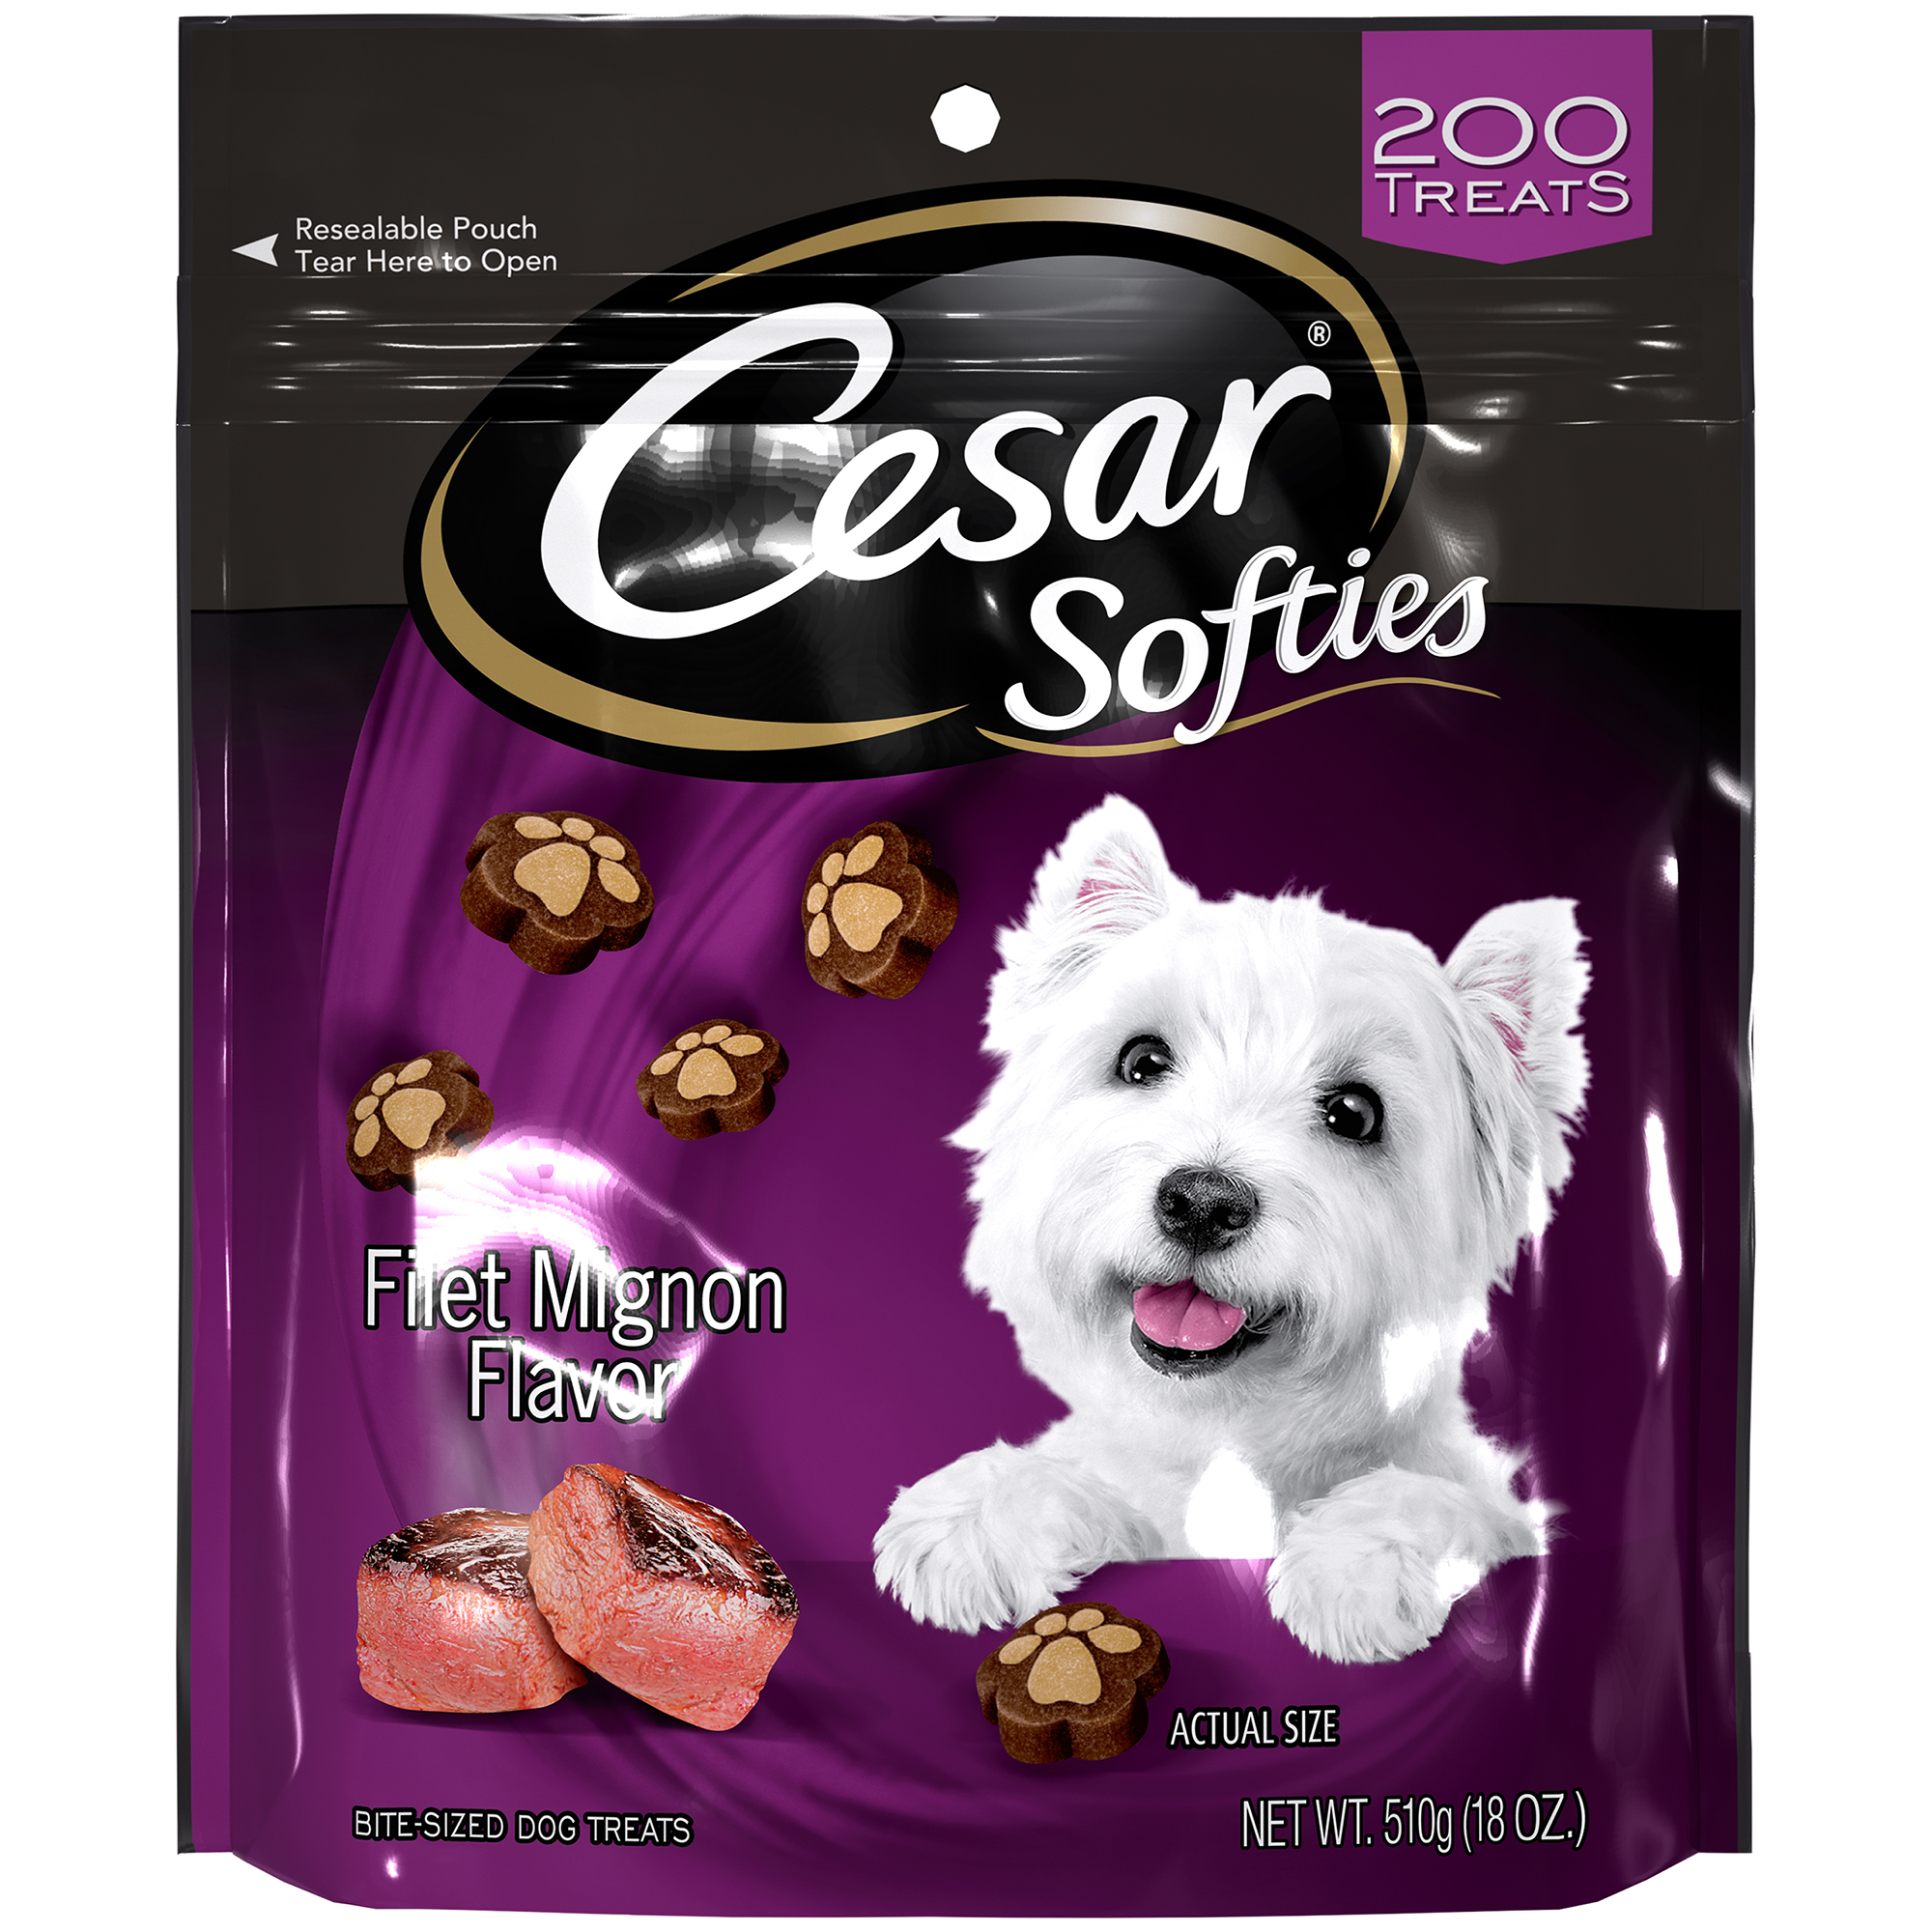 CESAR SOFTIES Filet Mignon Flavor Dog Treats 18 oz. by Mars Petcare